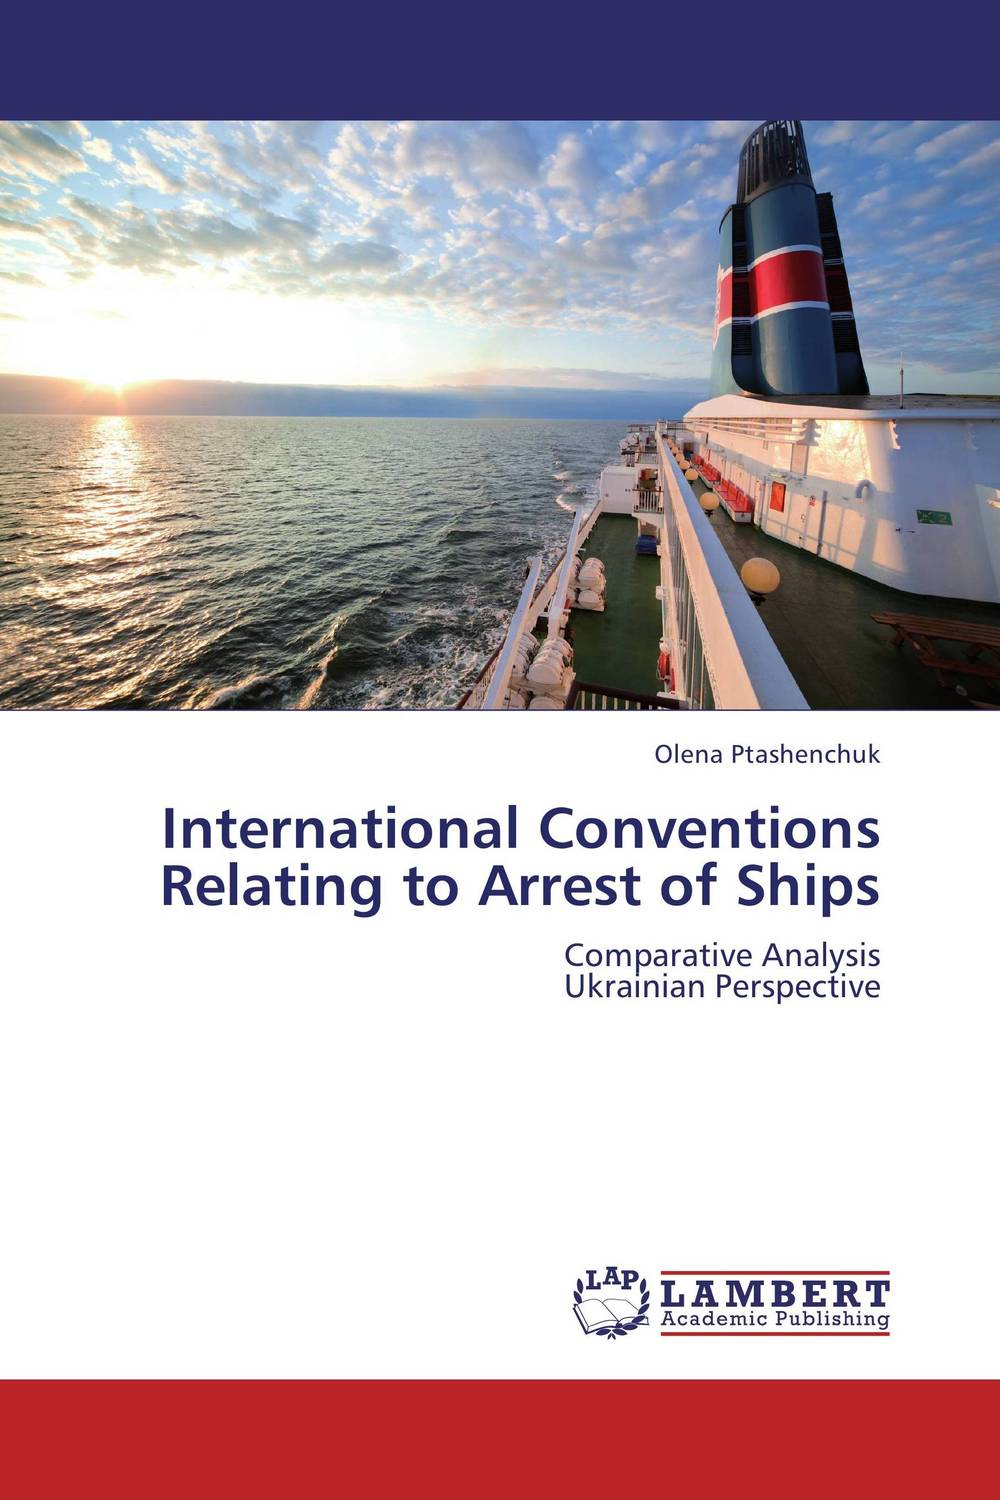 International Conventions Relating to Arrest of Ships fundamentals of physics extended 9th edition international student version with wileyplus set